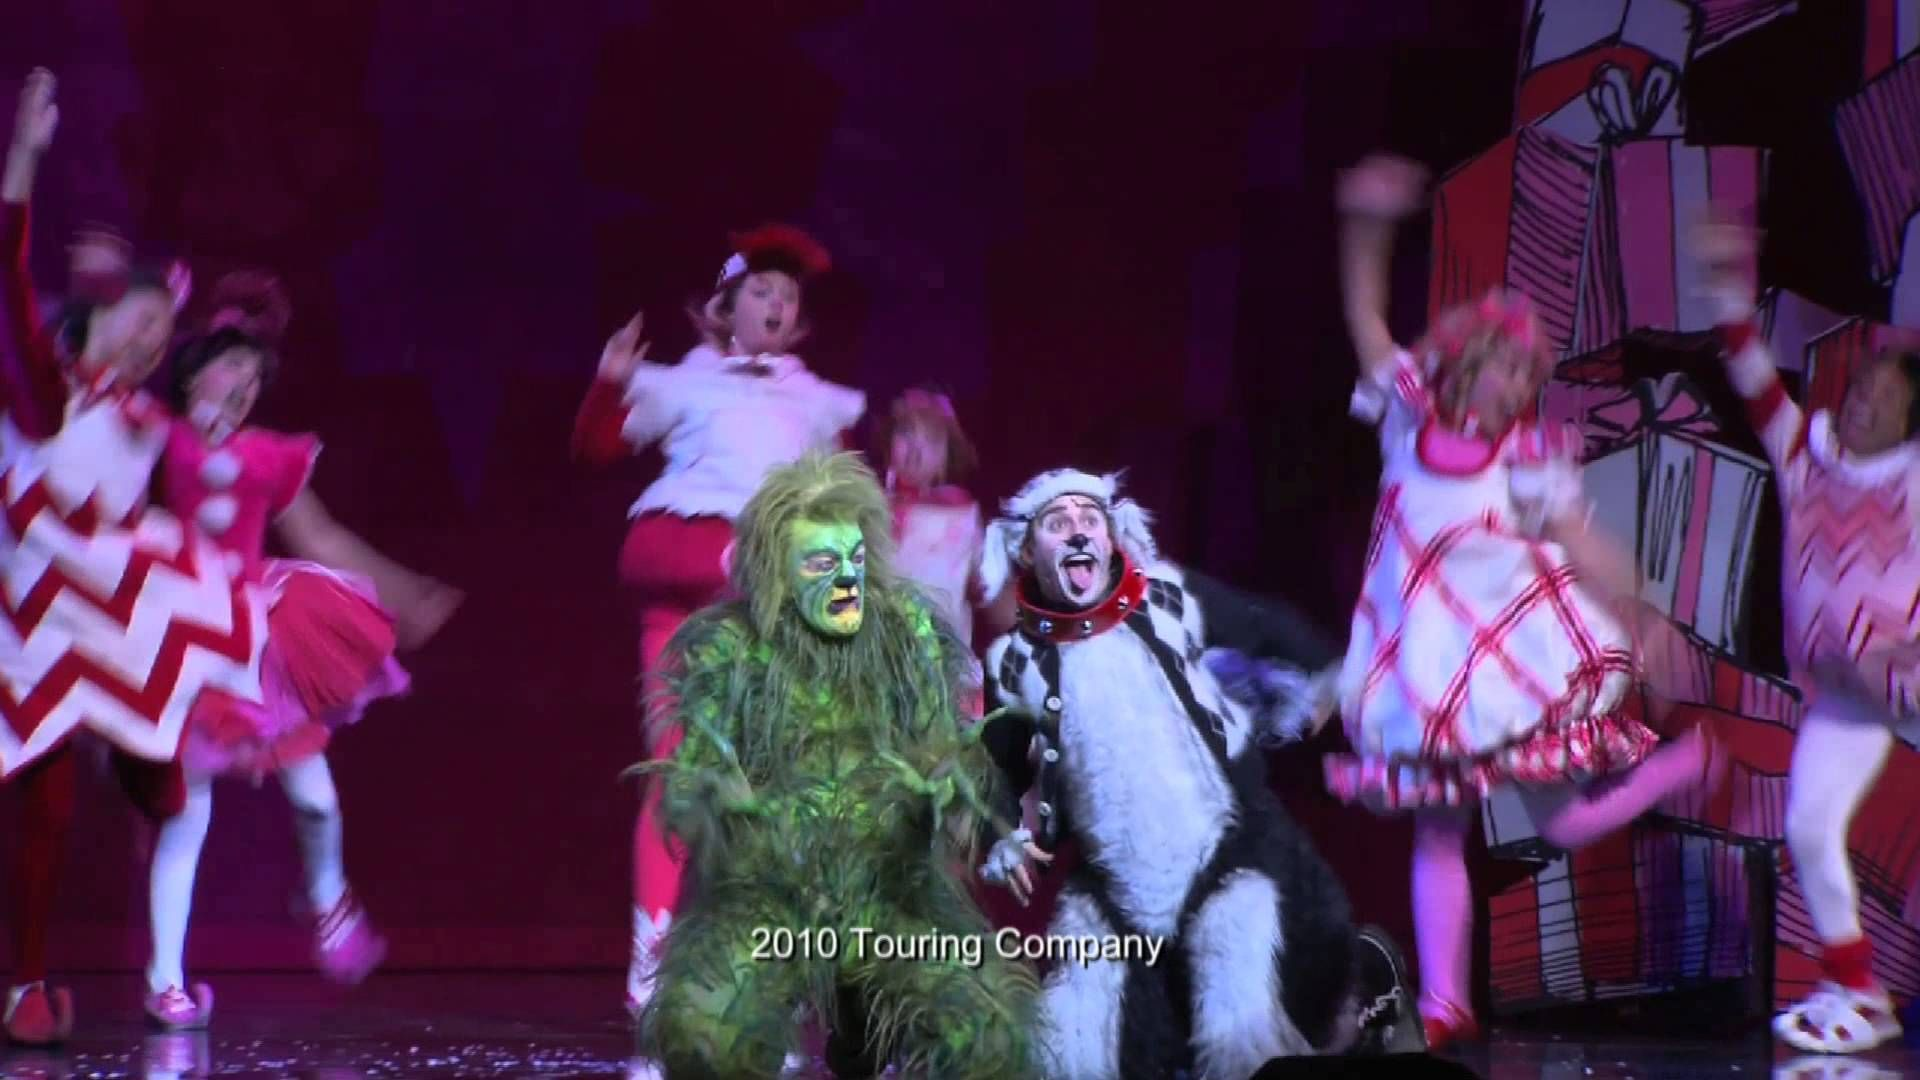 How The Grinch Stole Christmas Musical.Dr Seuss How The Grinch Stole Christmas The Musical Makes